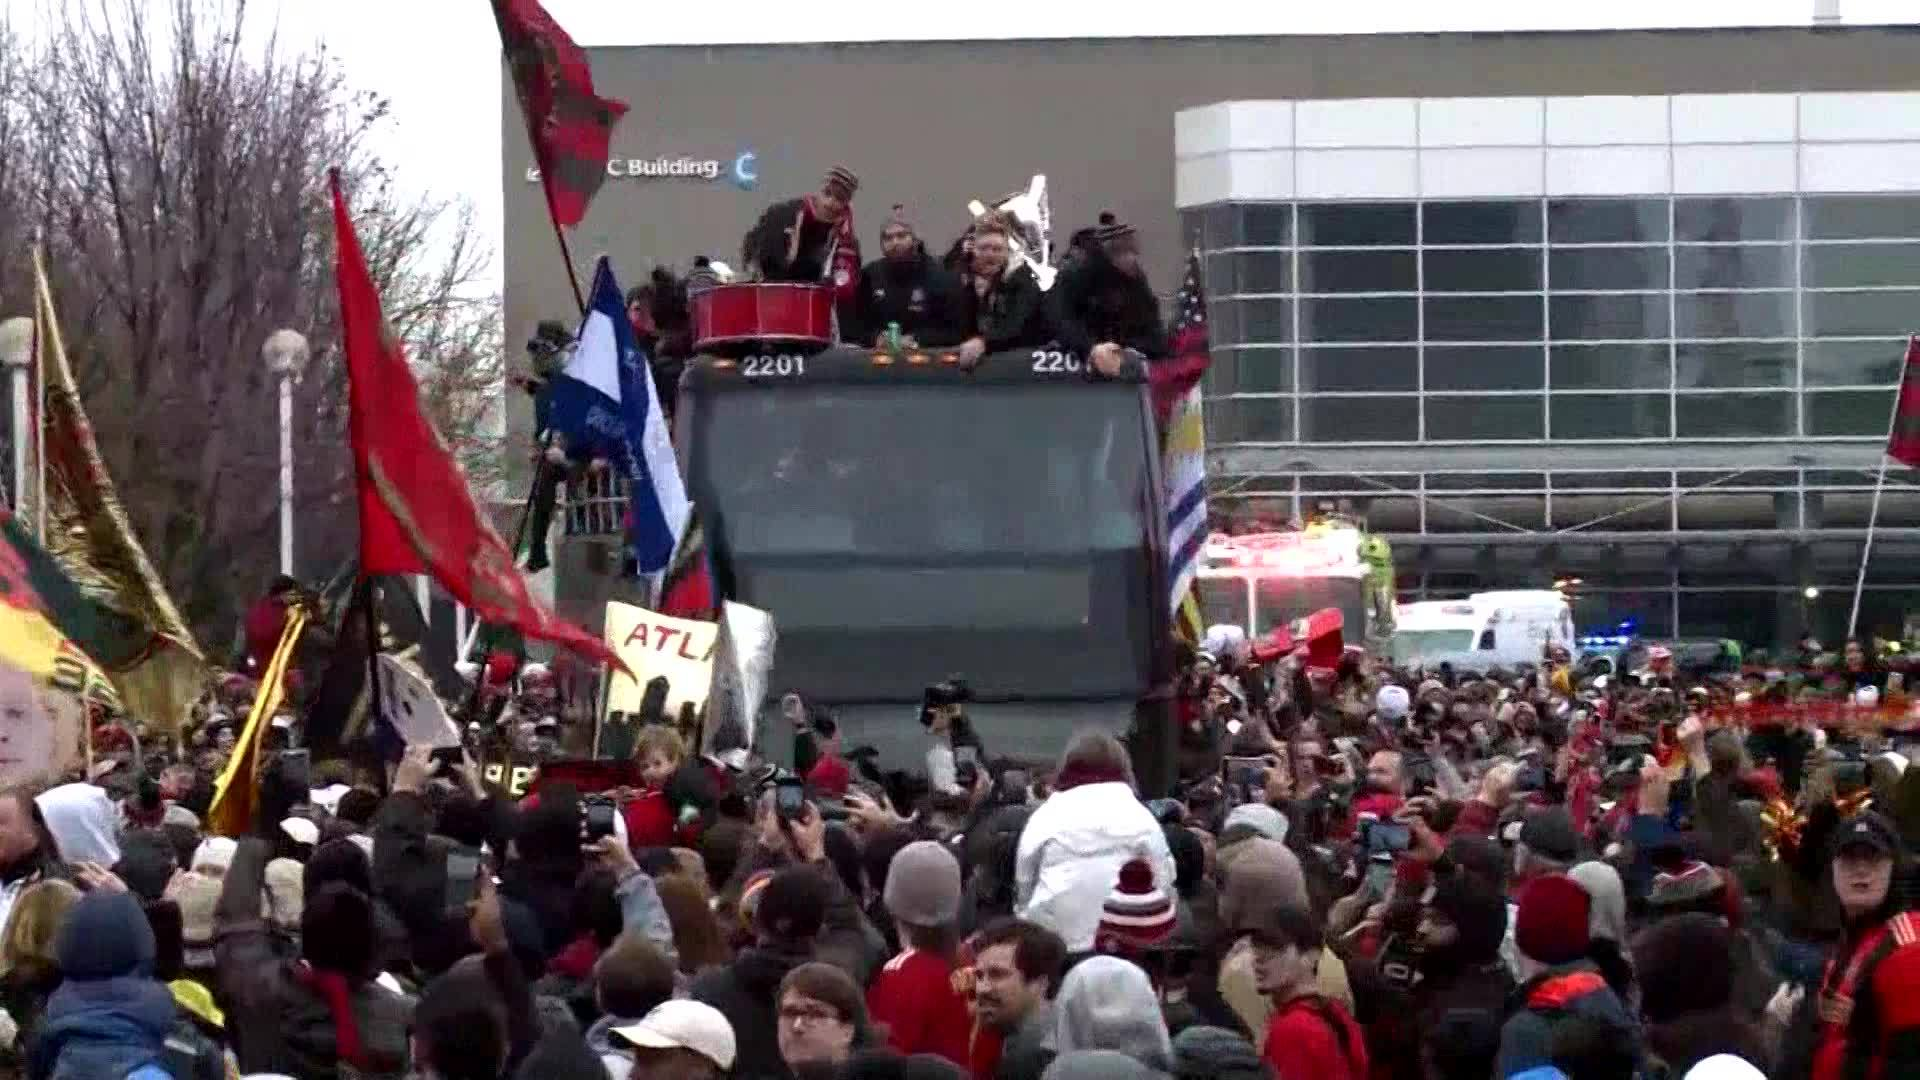 VIDEO__A_cold_MLS_victory_parade_0_20181210175757